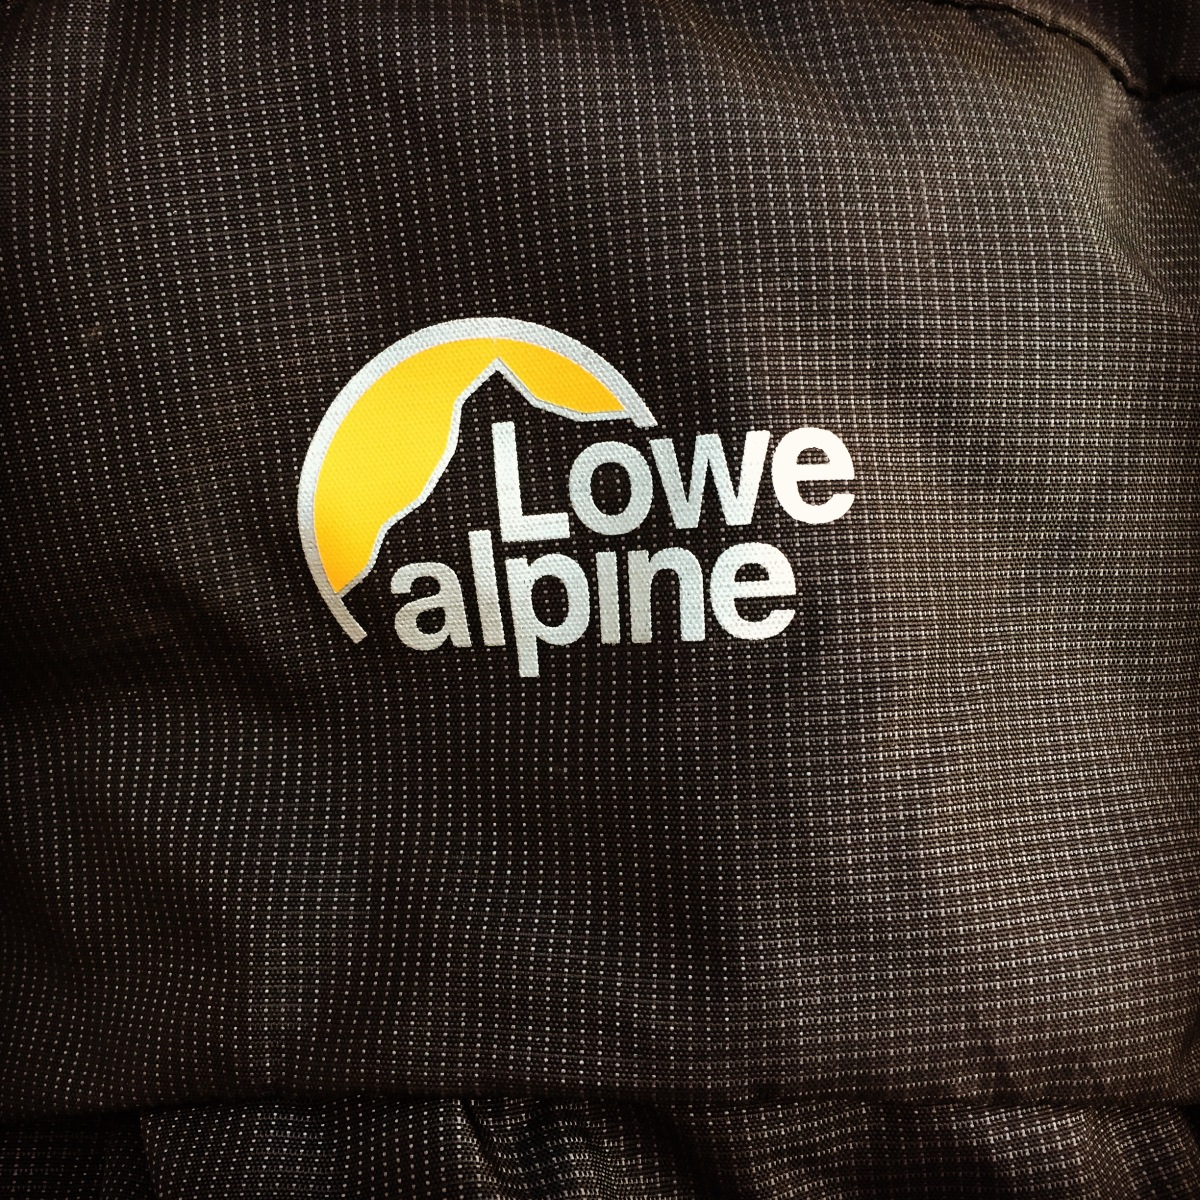 LOWE ALPINE Cholatse II 55-65 Review